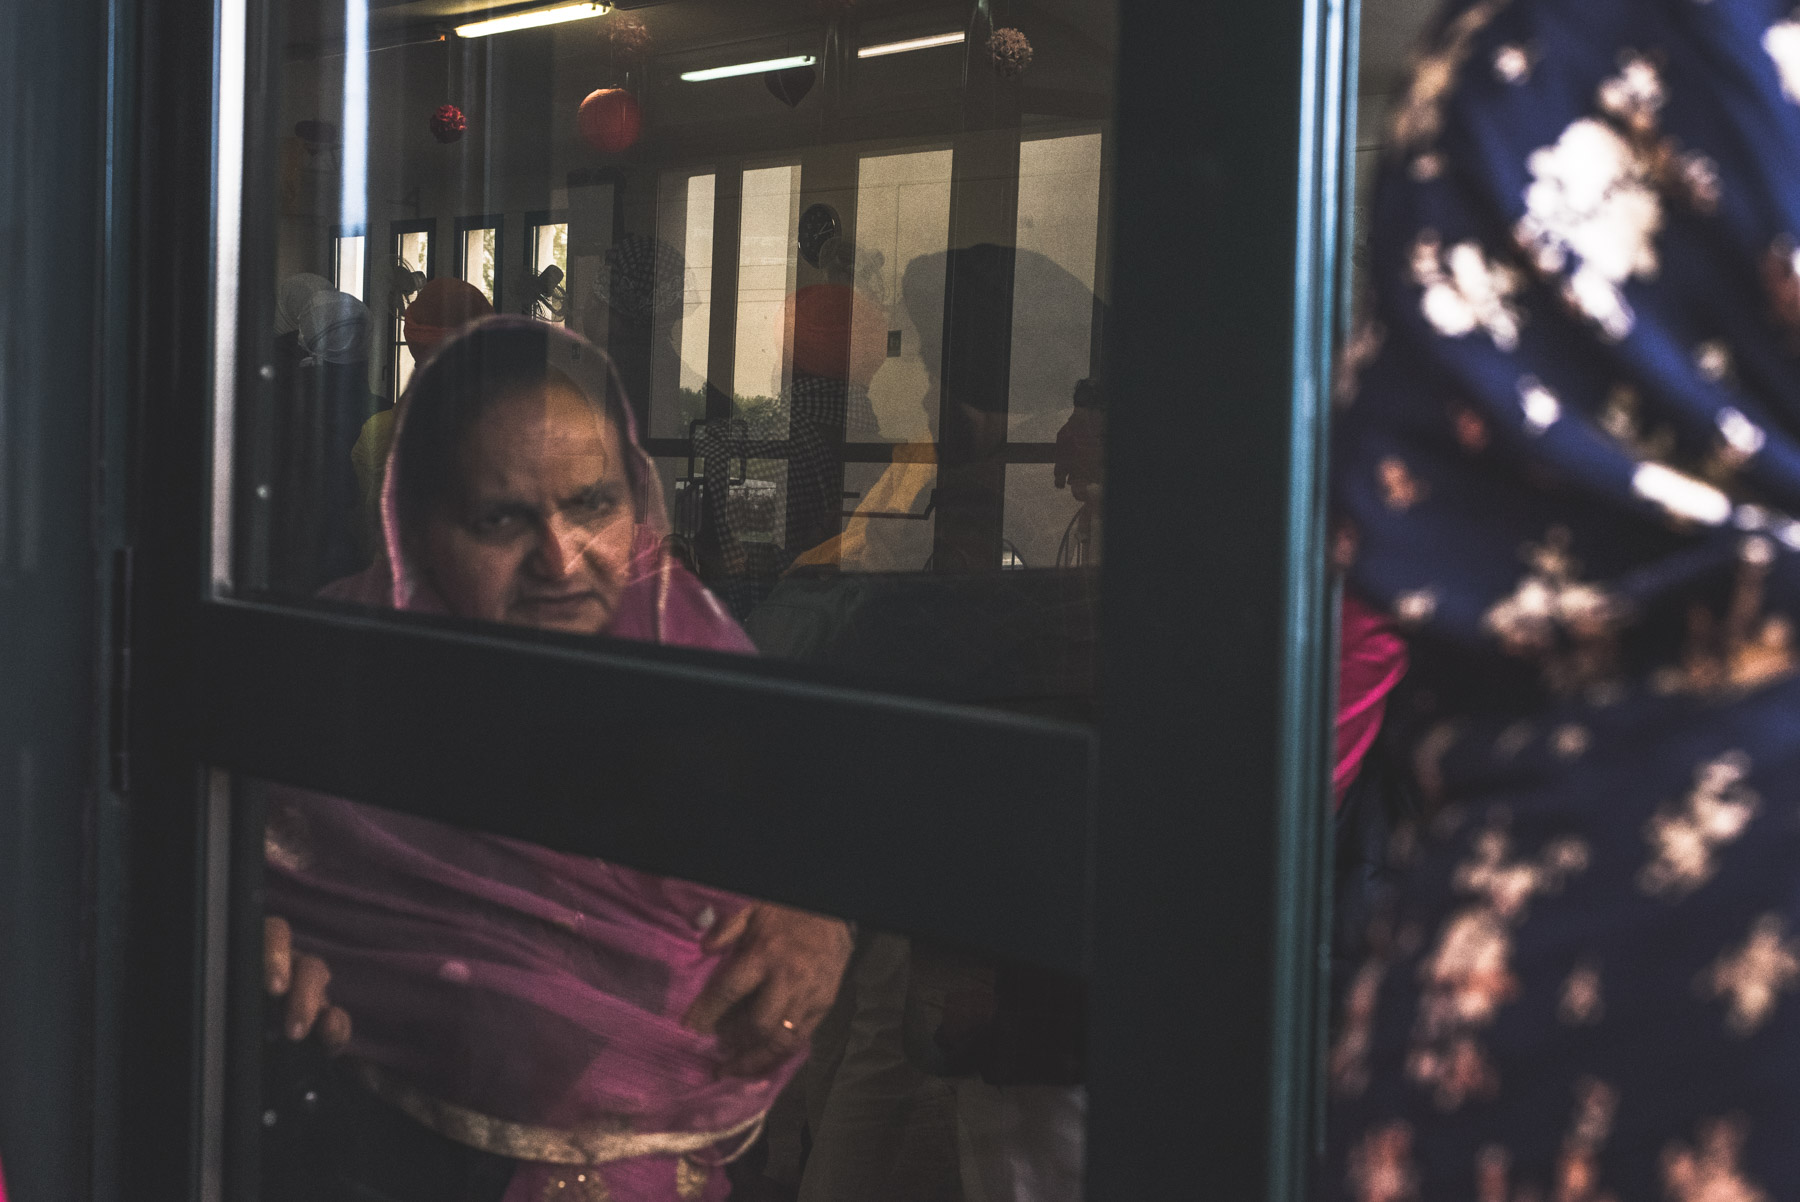 Al old Sikh lady solemny looking ahead of her through a window while attending Vaisakhi in Novellara